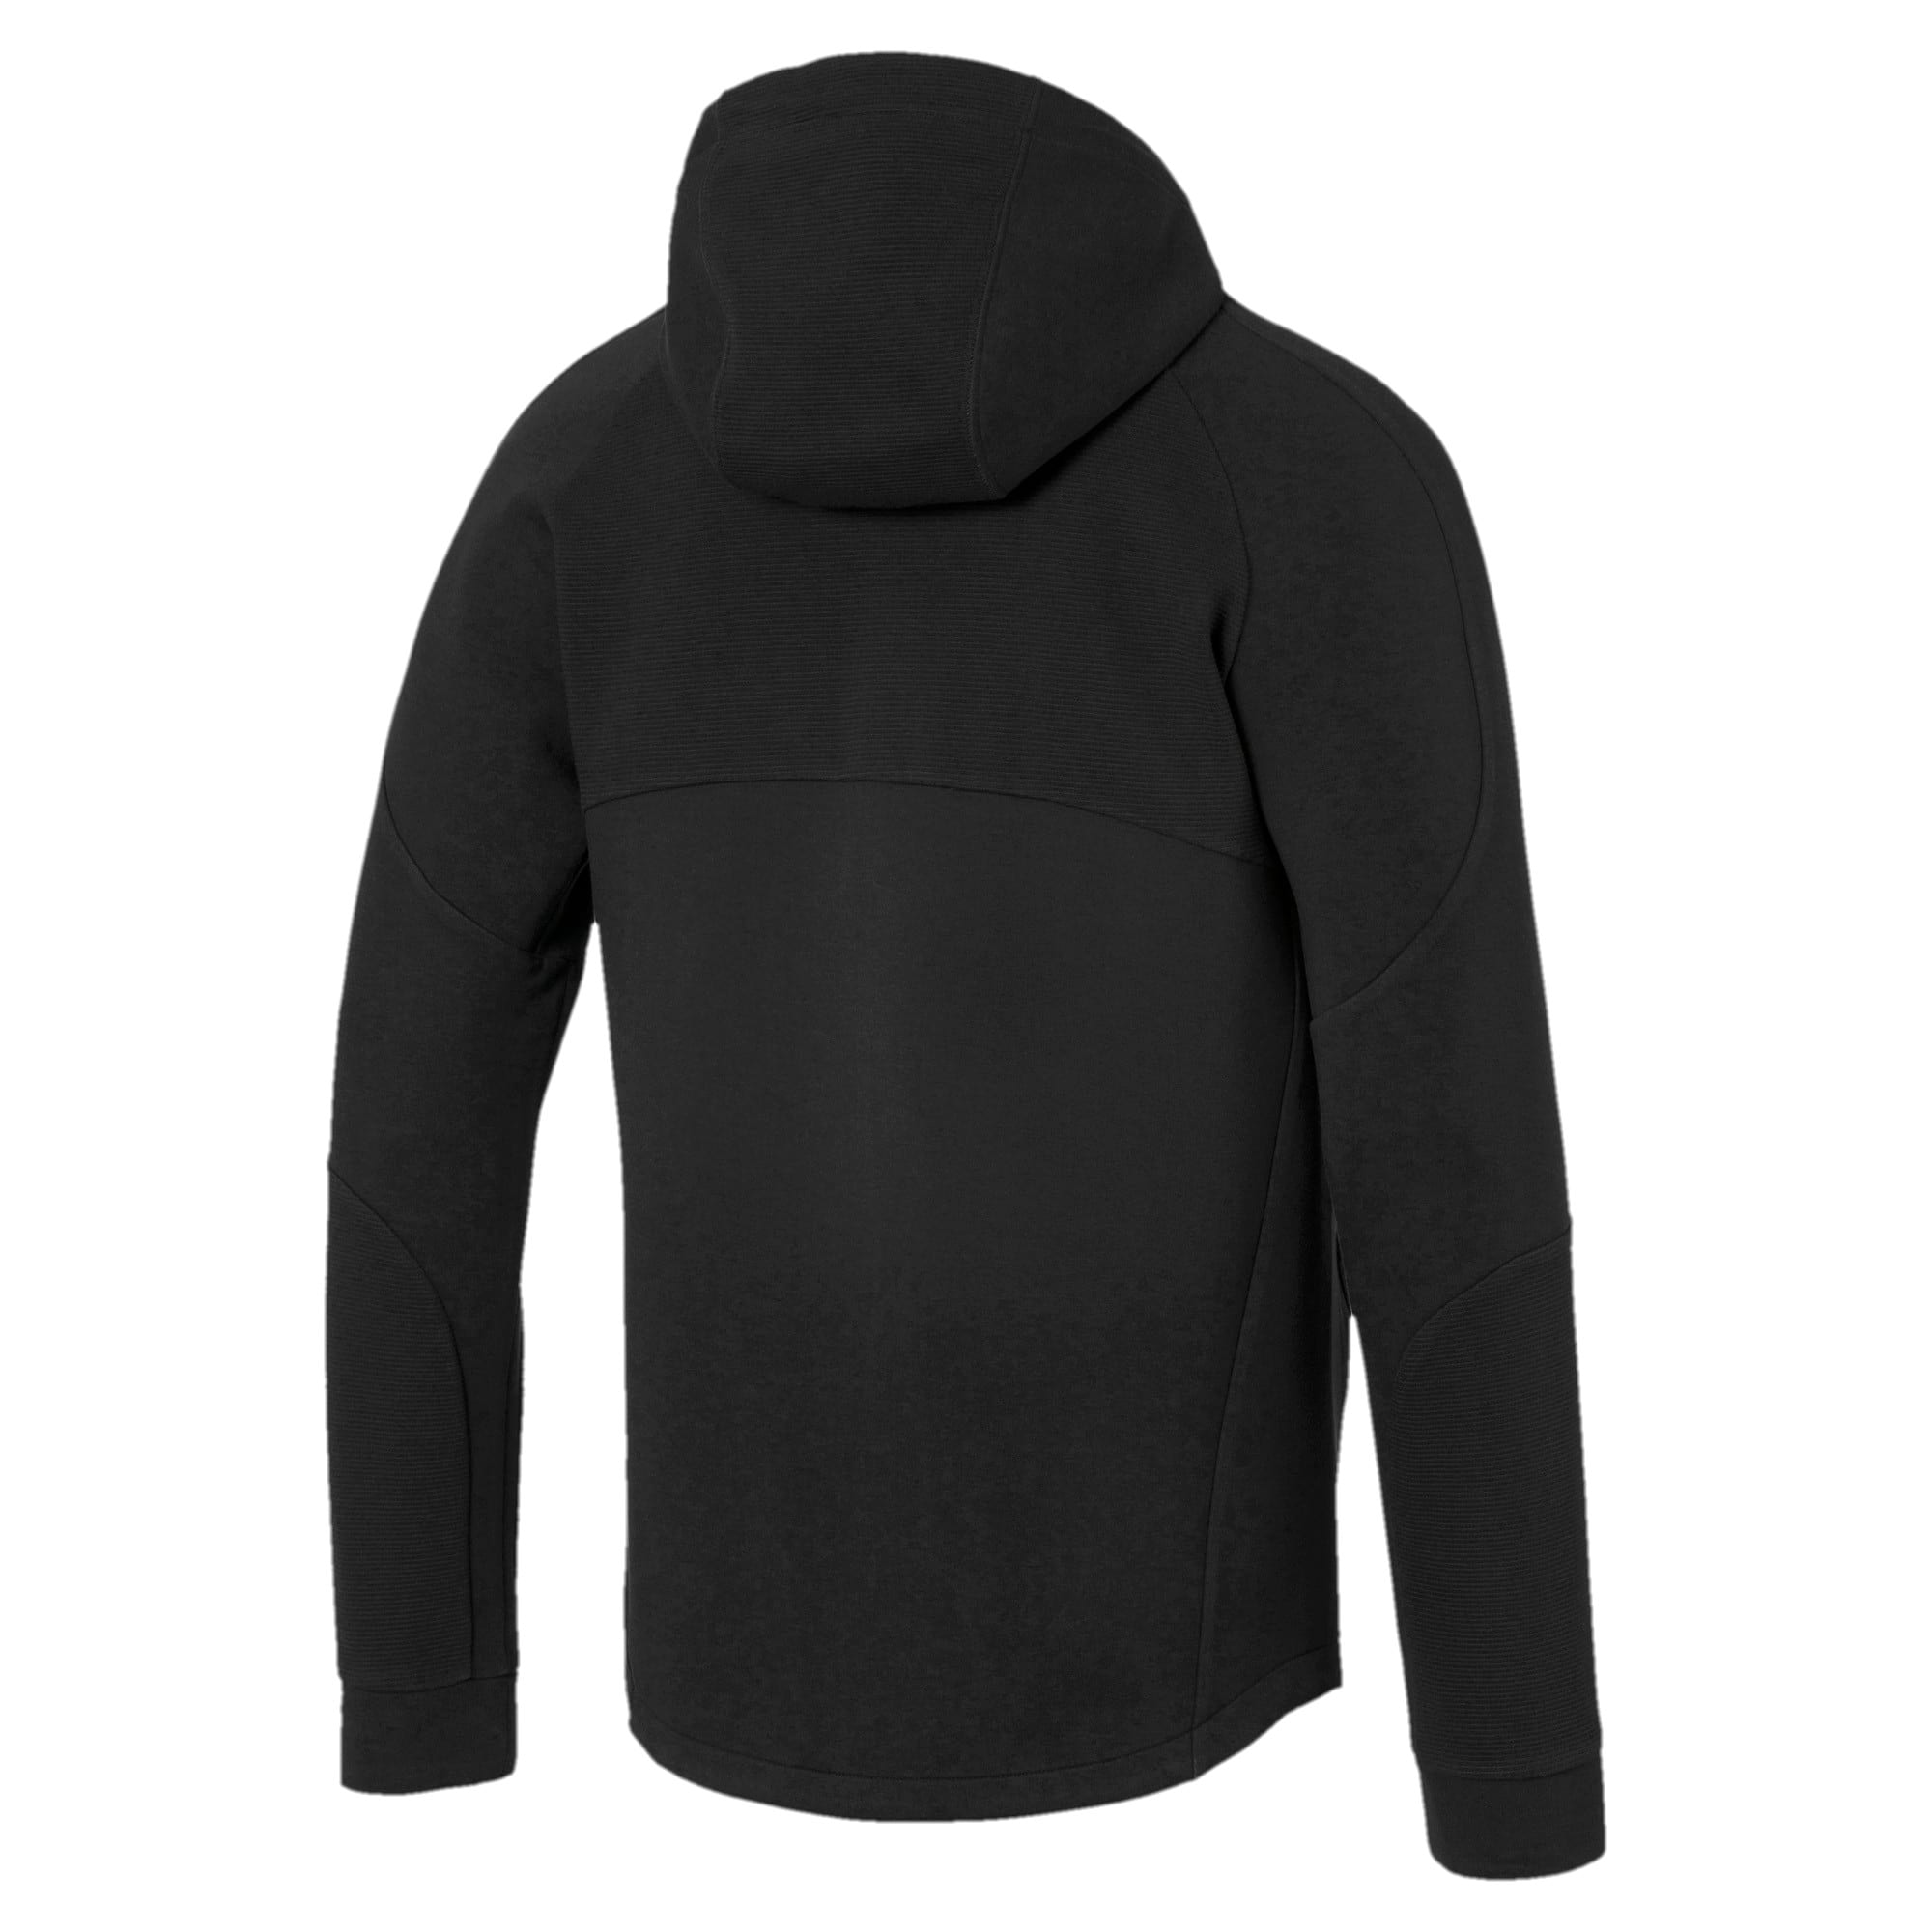 Thumbnail 5 of Evostripe Full Zip Men's Hoodie, Puma Black, medium